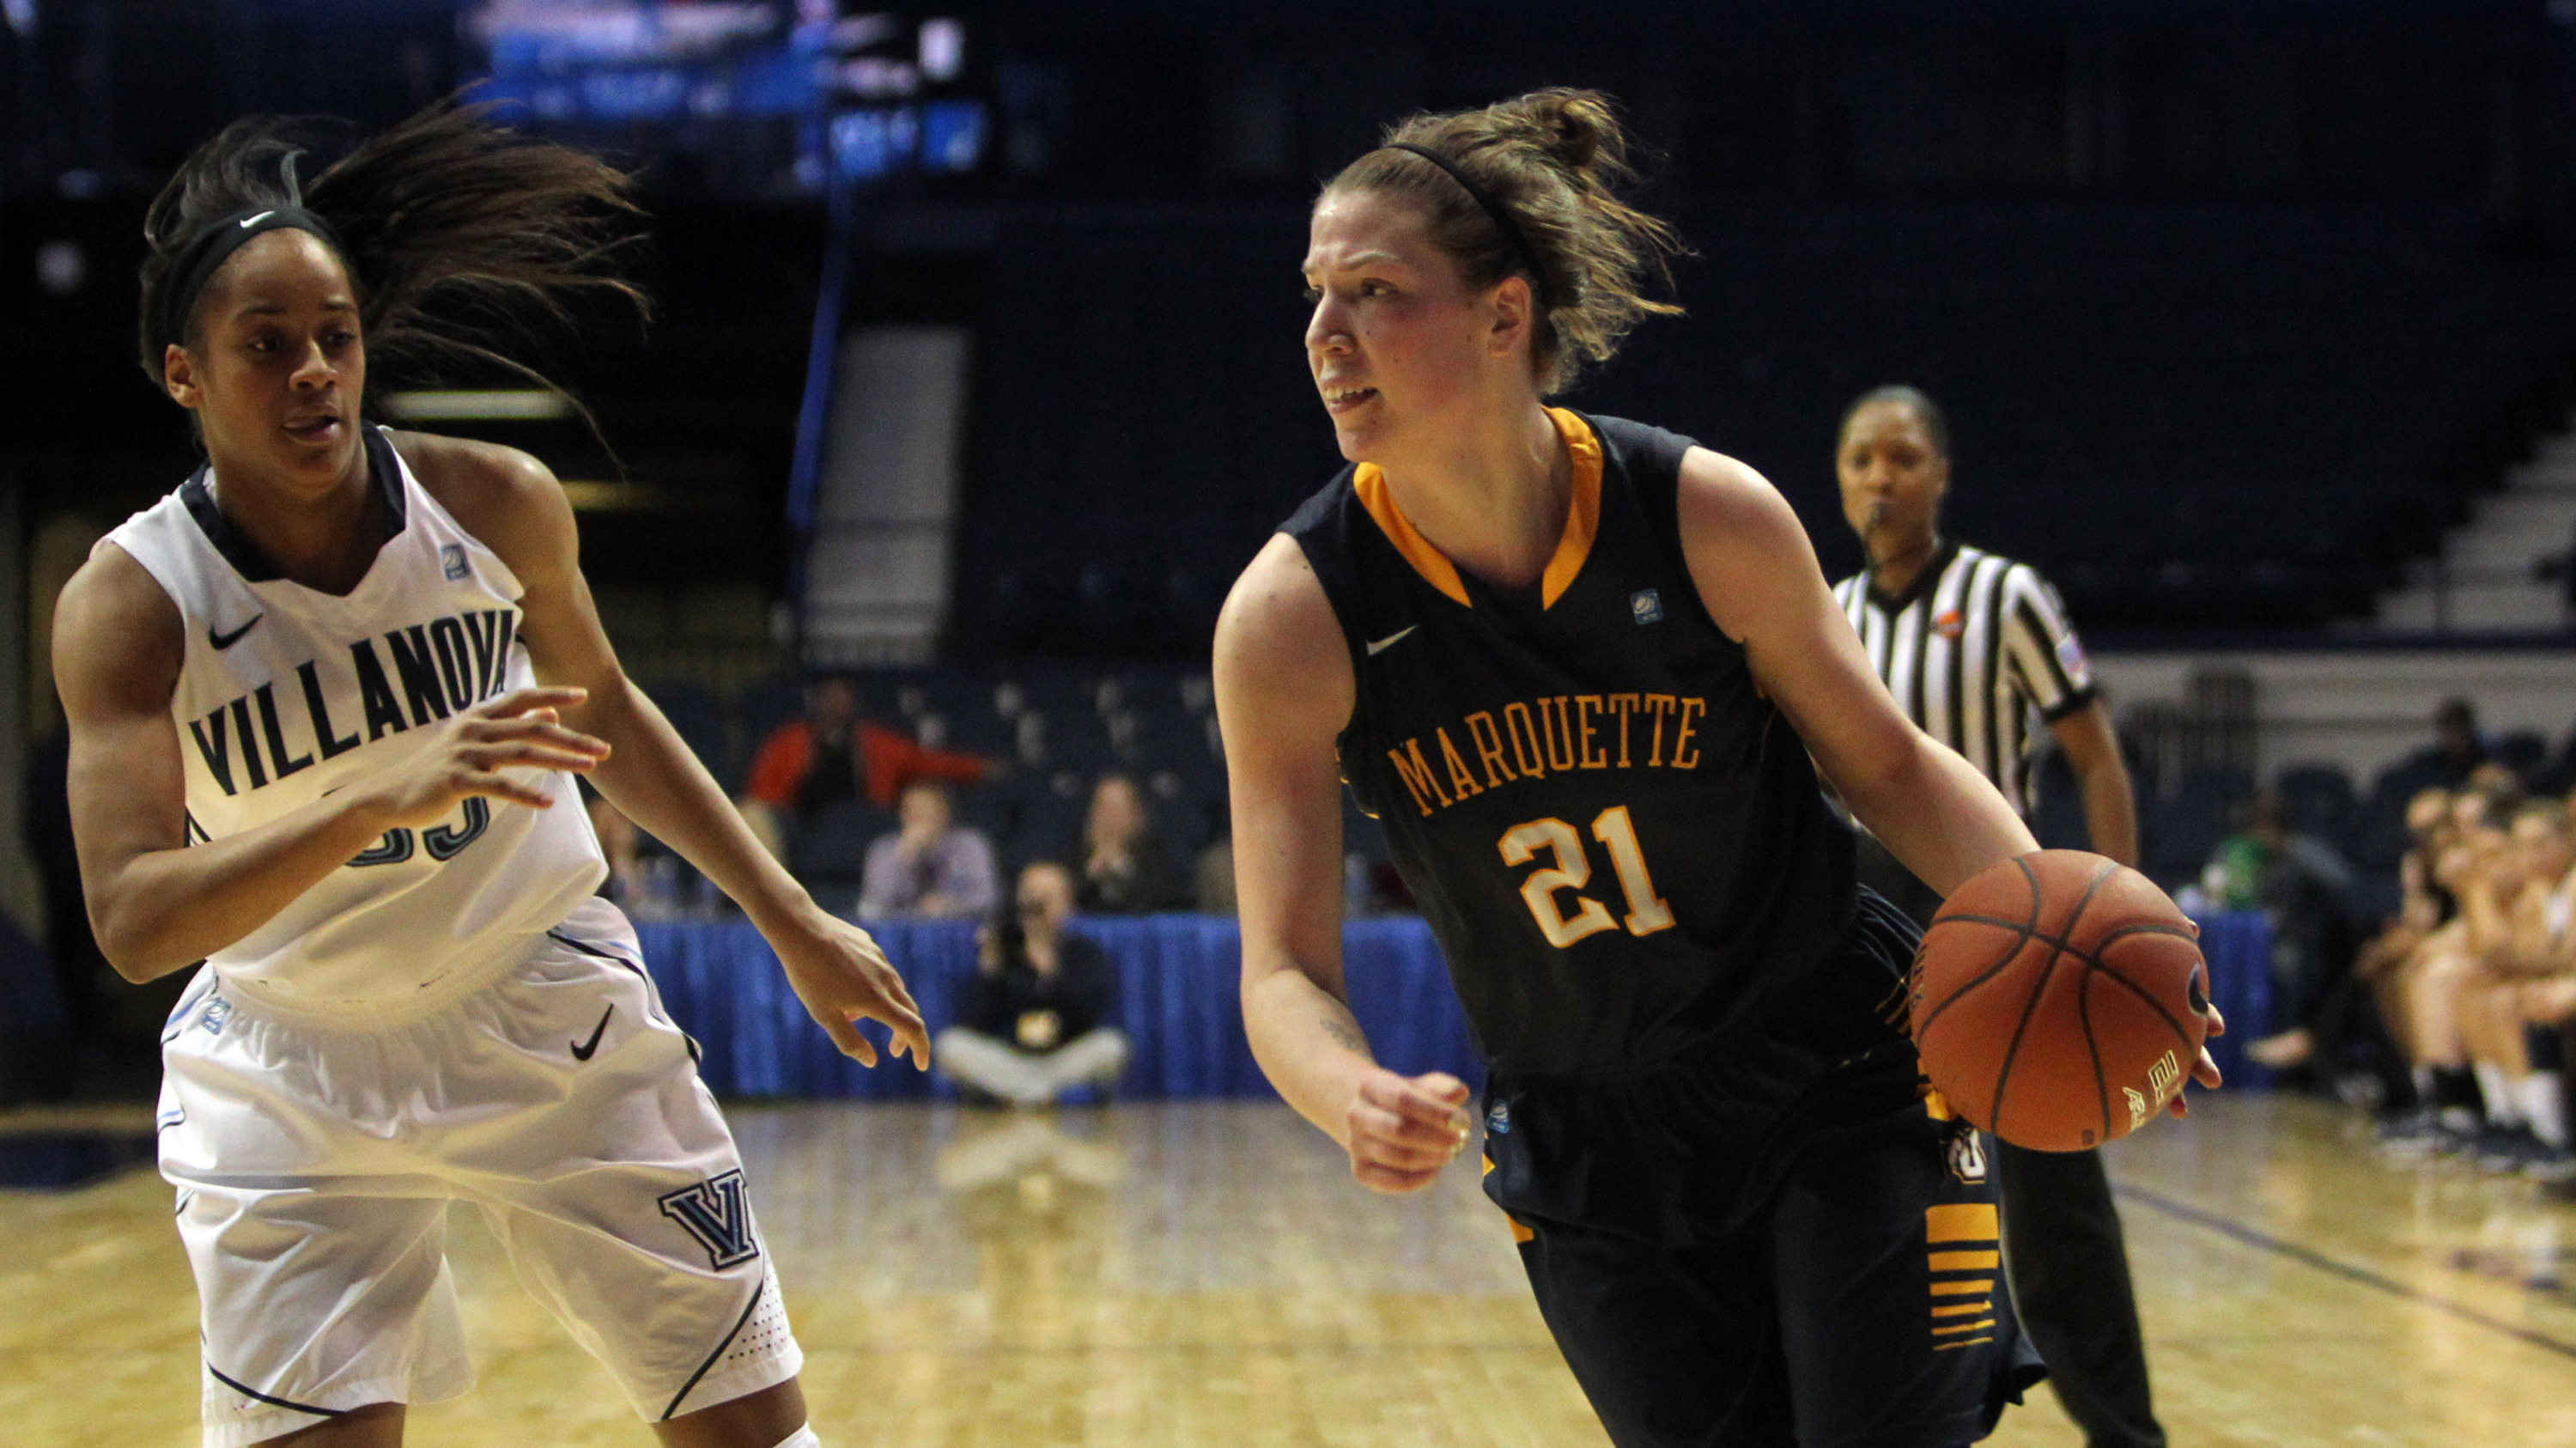 Katherine Plouffe notched her 12th double-double